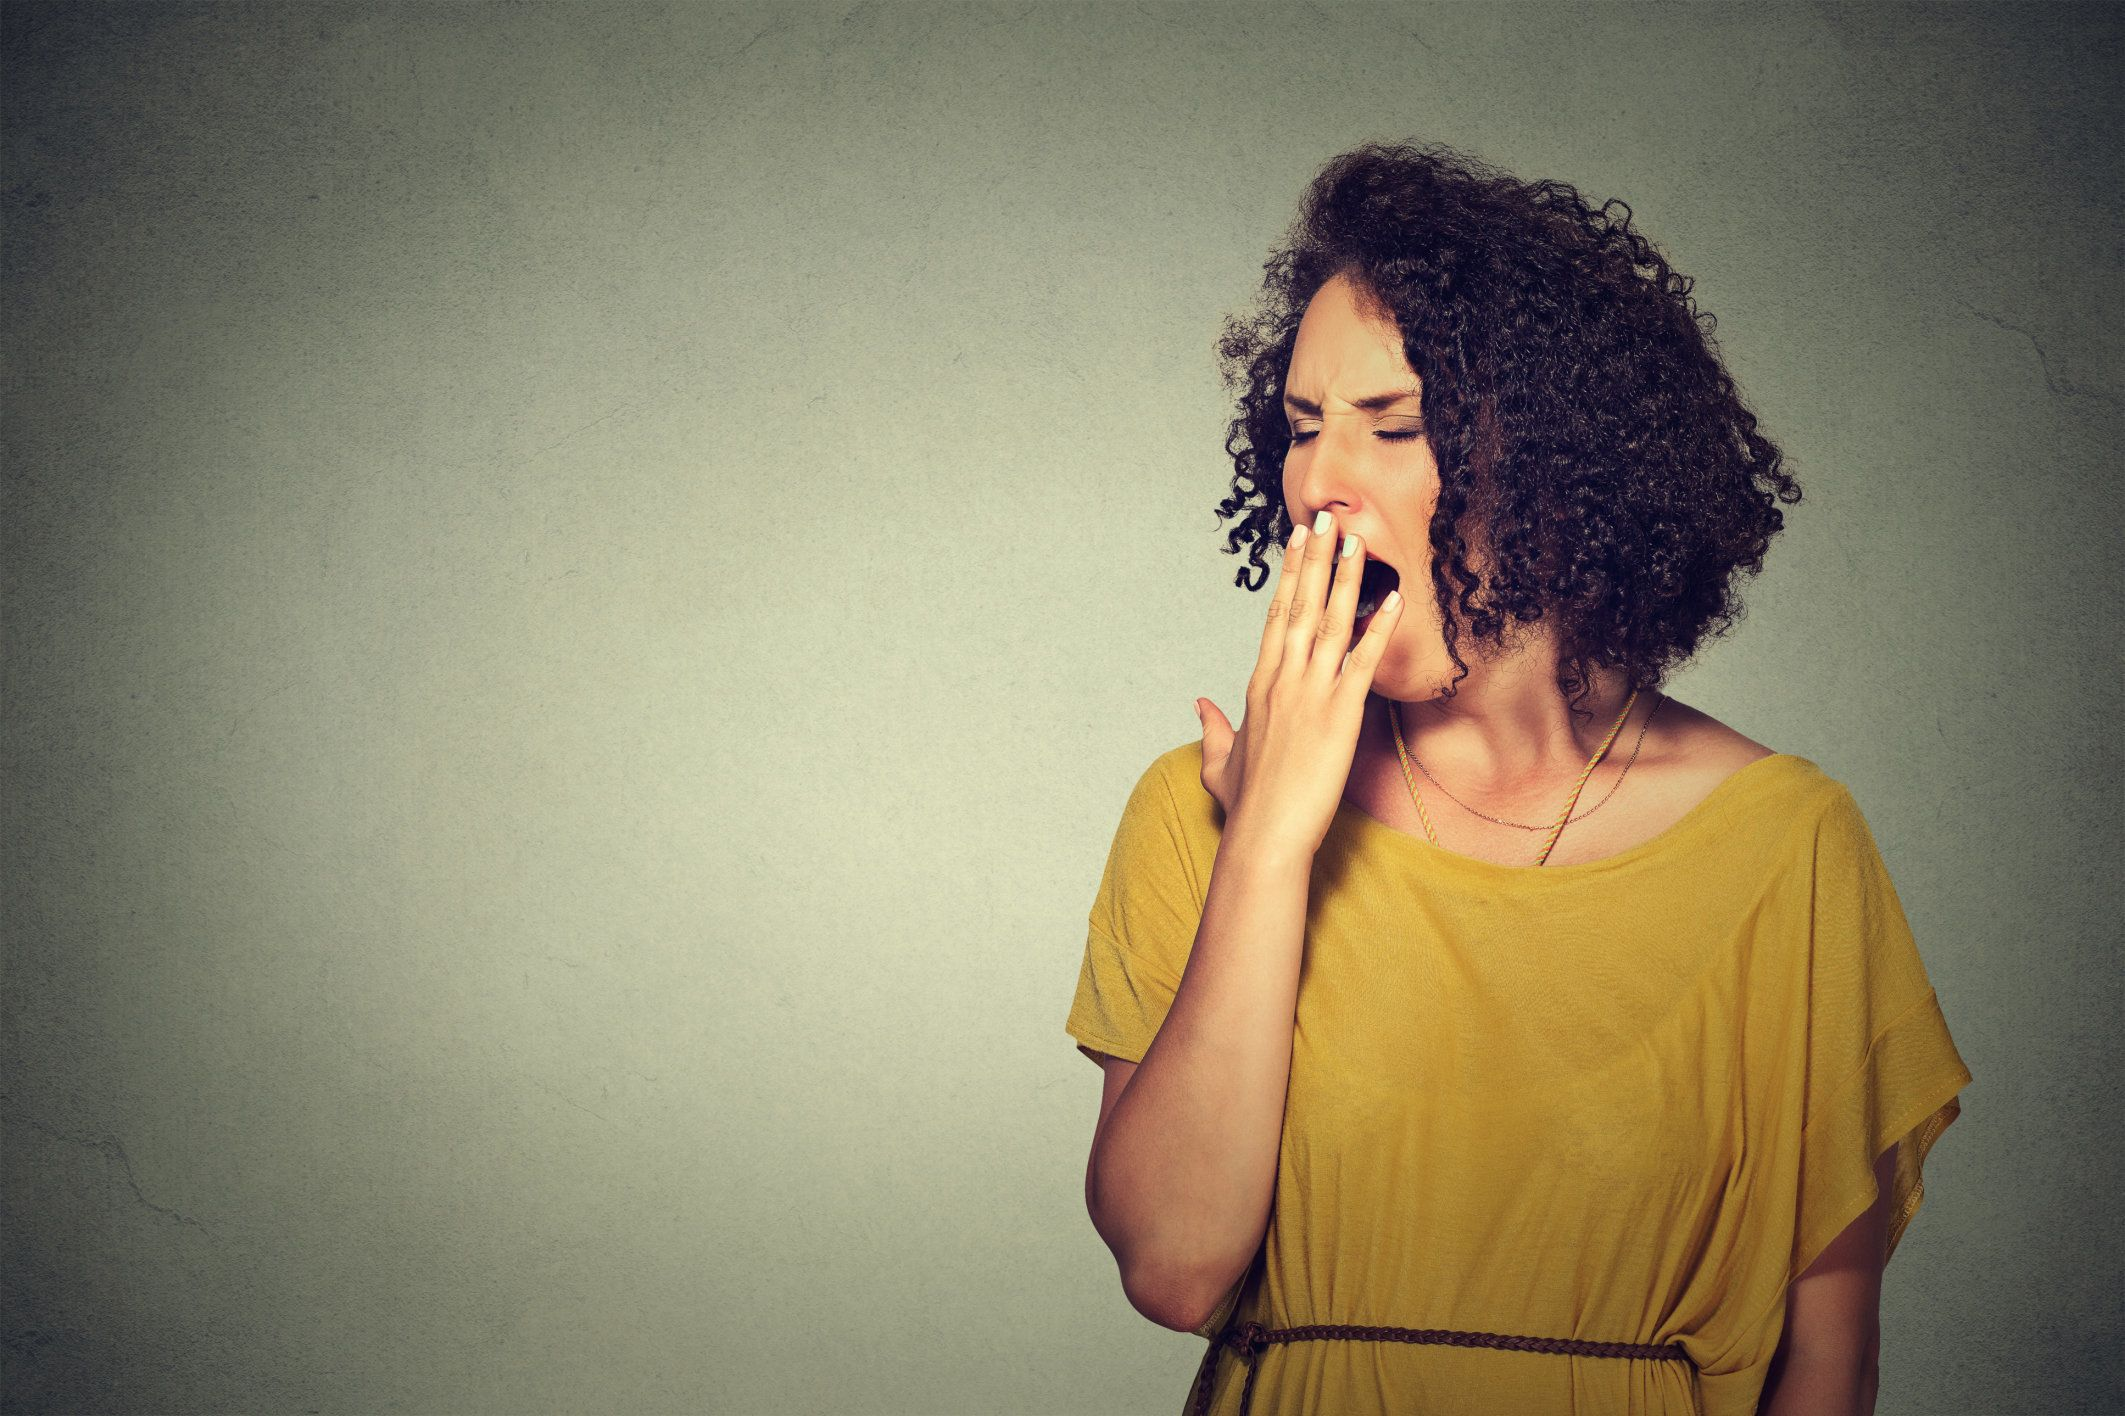 A new study suggests not getting enough sleep may actually change the bacteria in your gut that play a role in keeping metabo